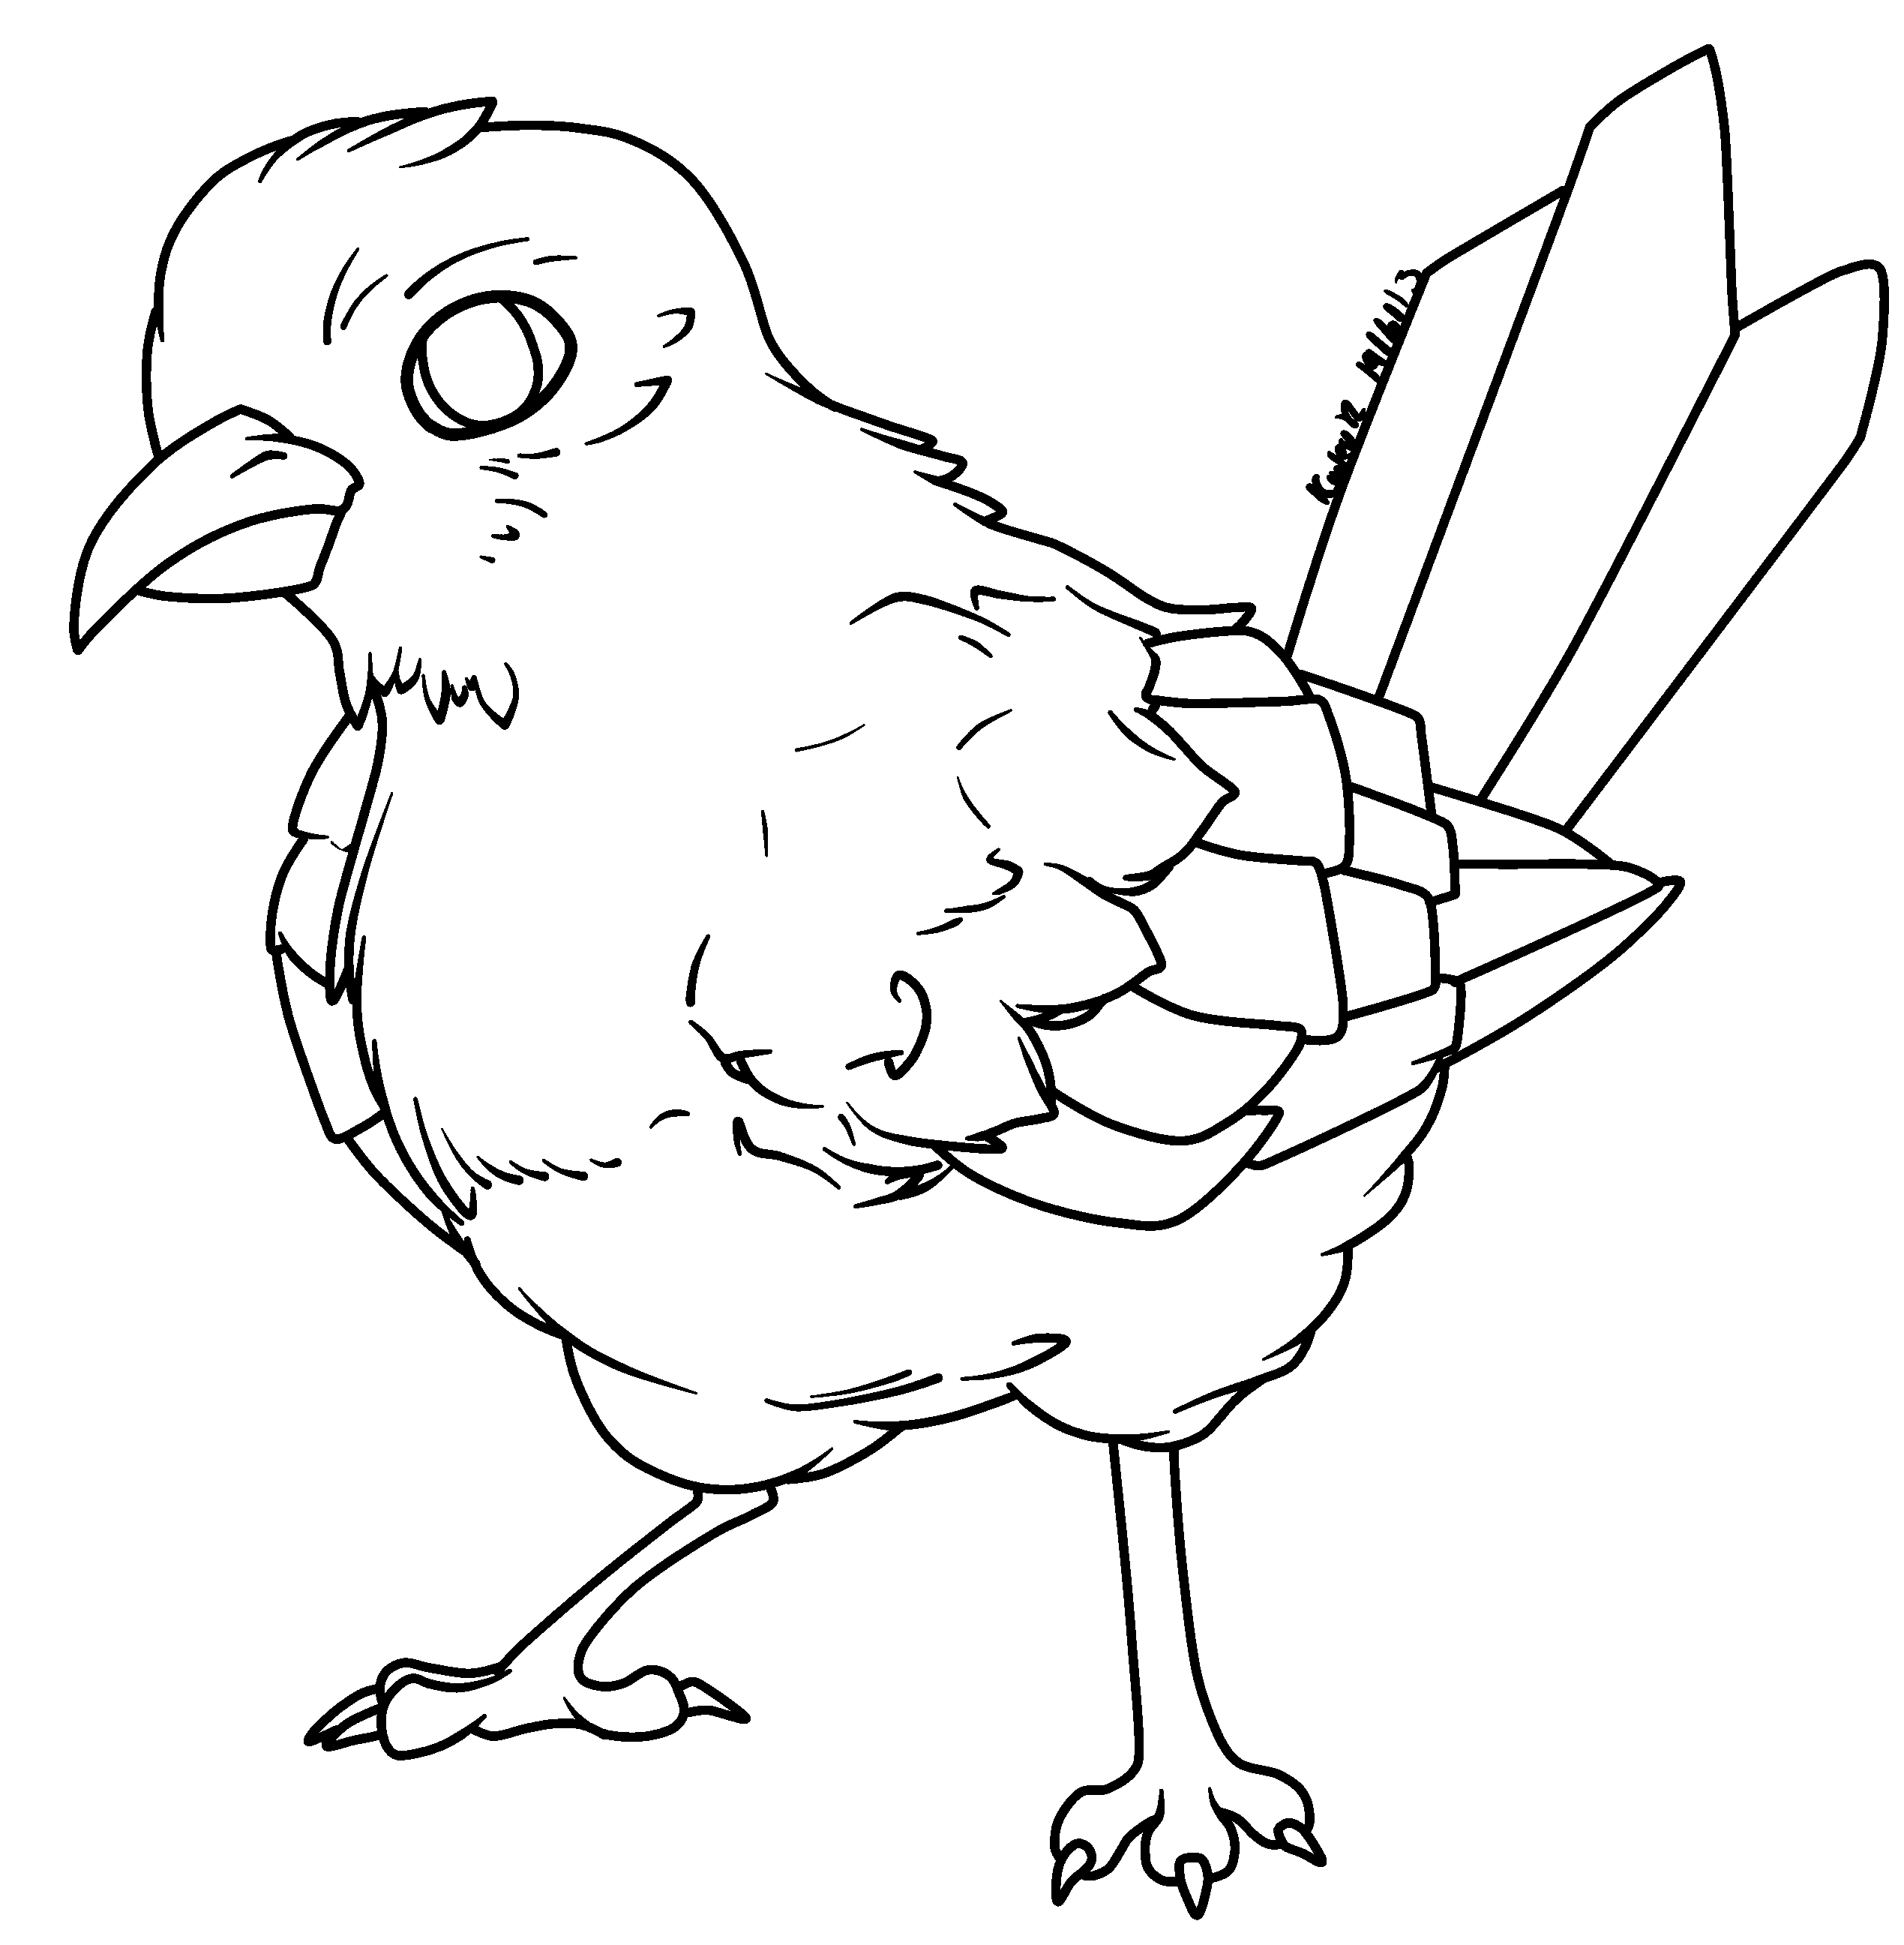 Line Art Birds : Rq bird lineart by abyssinchaos on deviantart